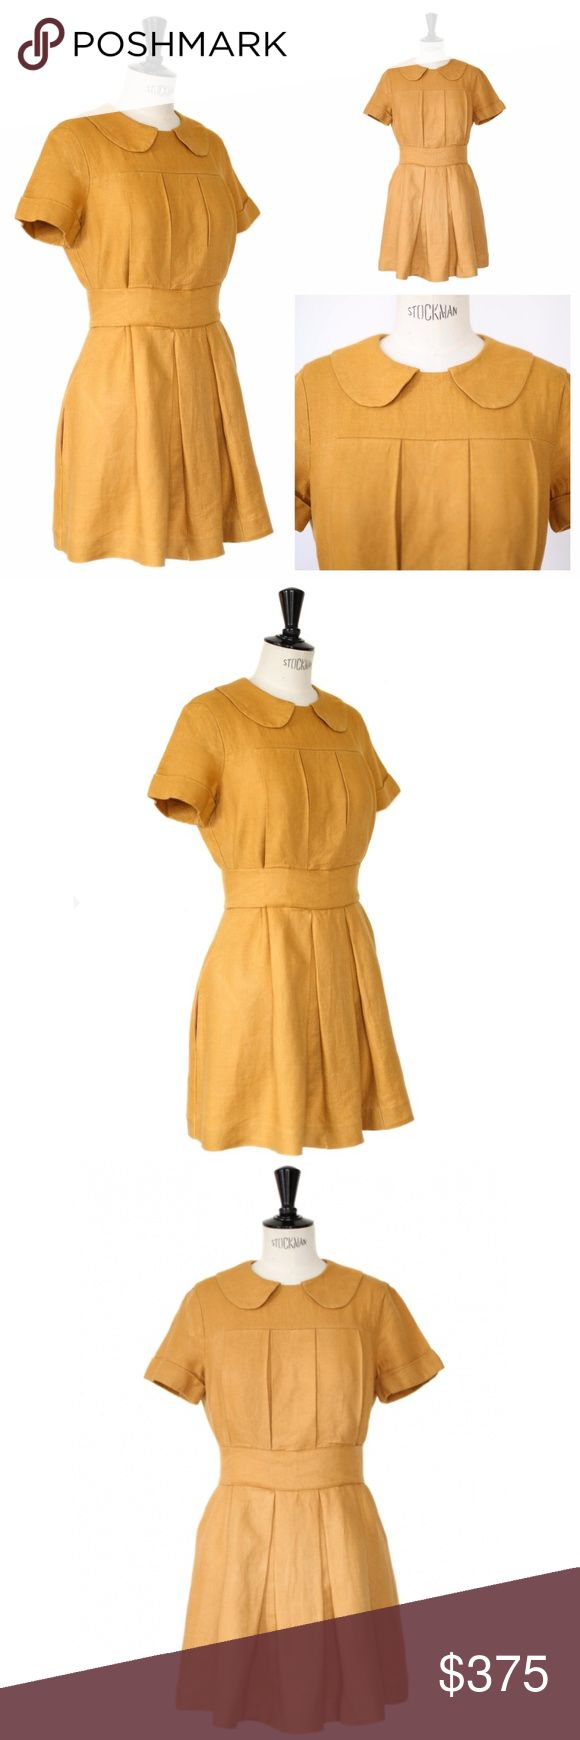 "SEE BY CHLOE Yellow Pleated Linen Mini Dress ""Lovely SEE BY CHLOE mini dress. Safran yellow linen short sleeves dress with peter pan collar. Beautiful saffran yellow color, very deep and vibrant, close to ocre and mustard yellow and slightly orange. Short sleeves. Peter pan collar. Linen belt knotted in the back. Small brass back zip. Long hidden side zip. Two side pockets.""  100% Linen.  Italian Size 44 US Size 8 See By Chloe Dresses Mini"